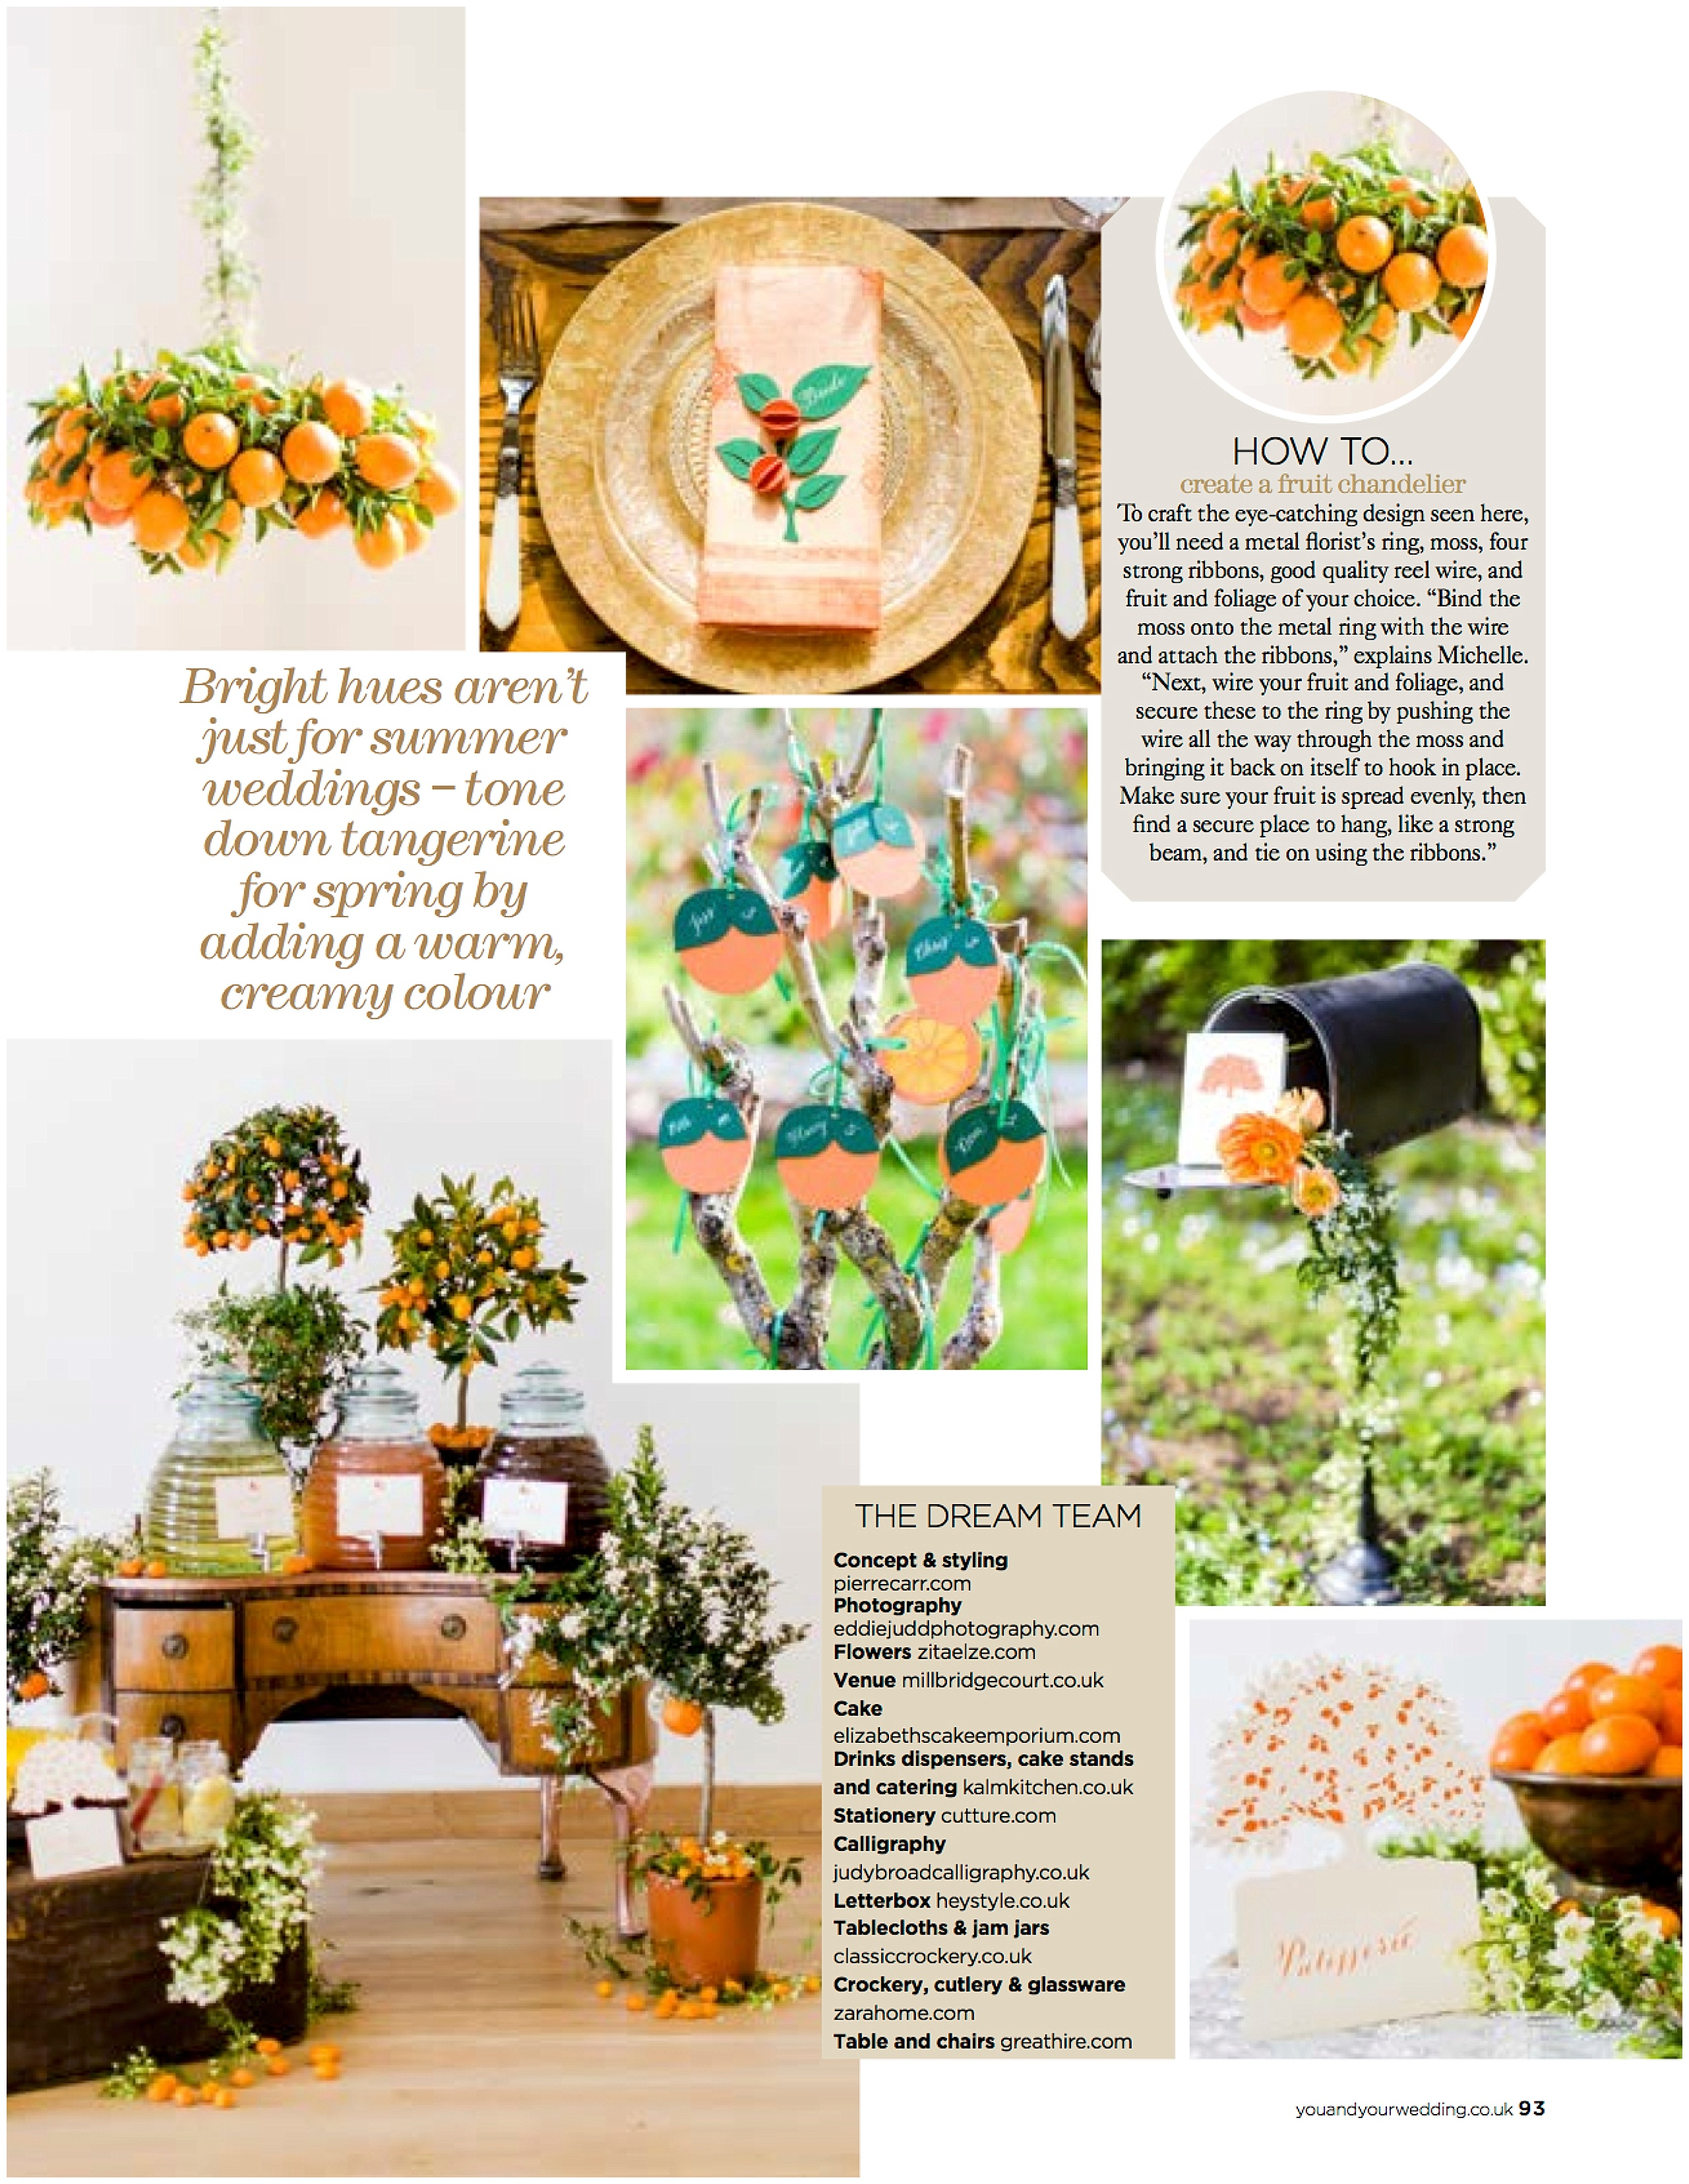 Published/Press: Featured in You and Your Wedding Magazine